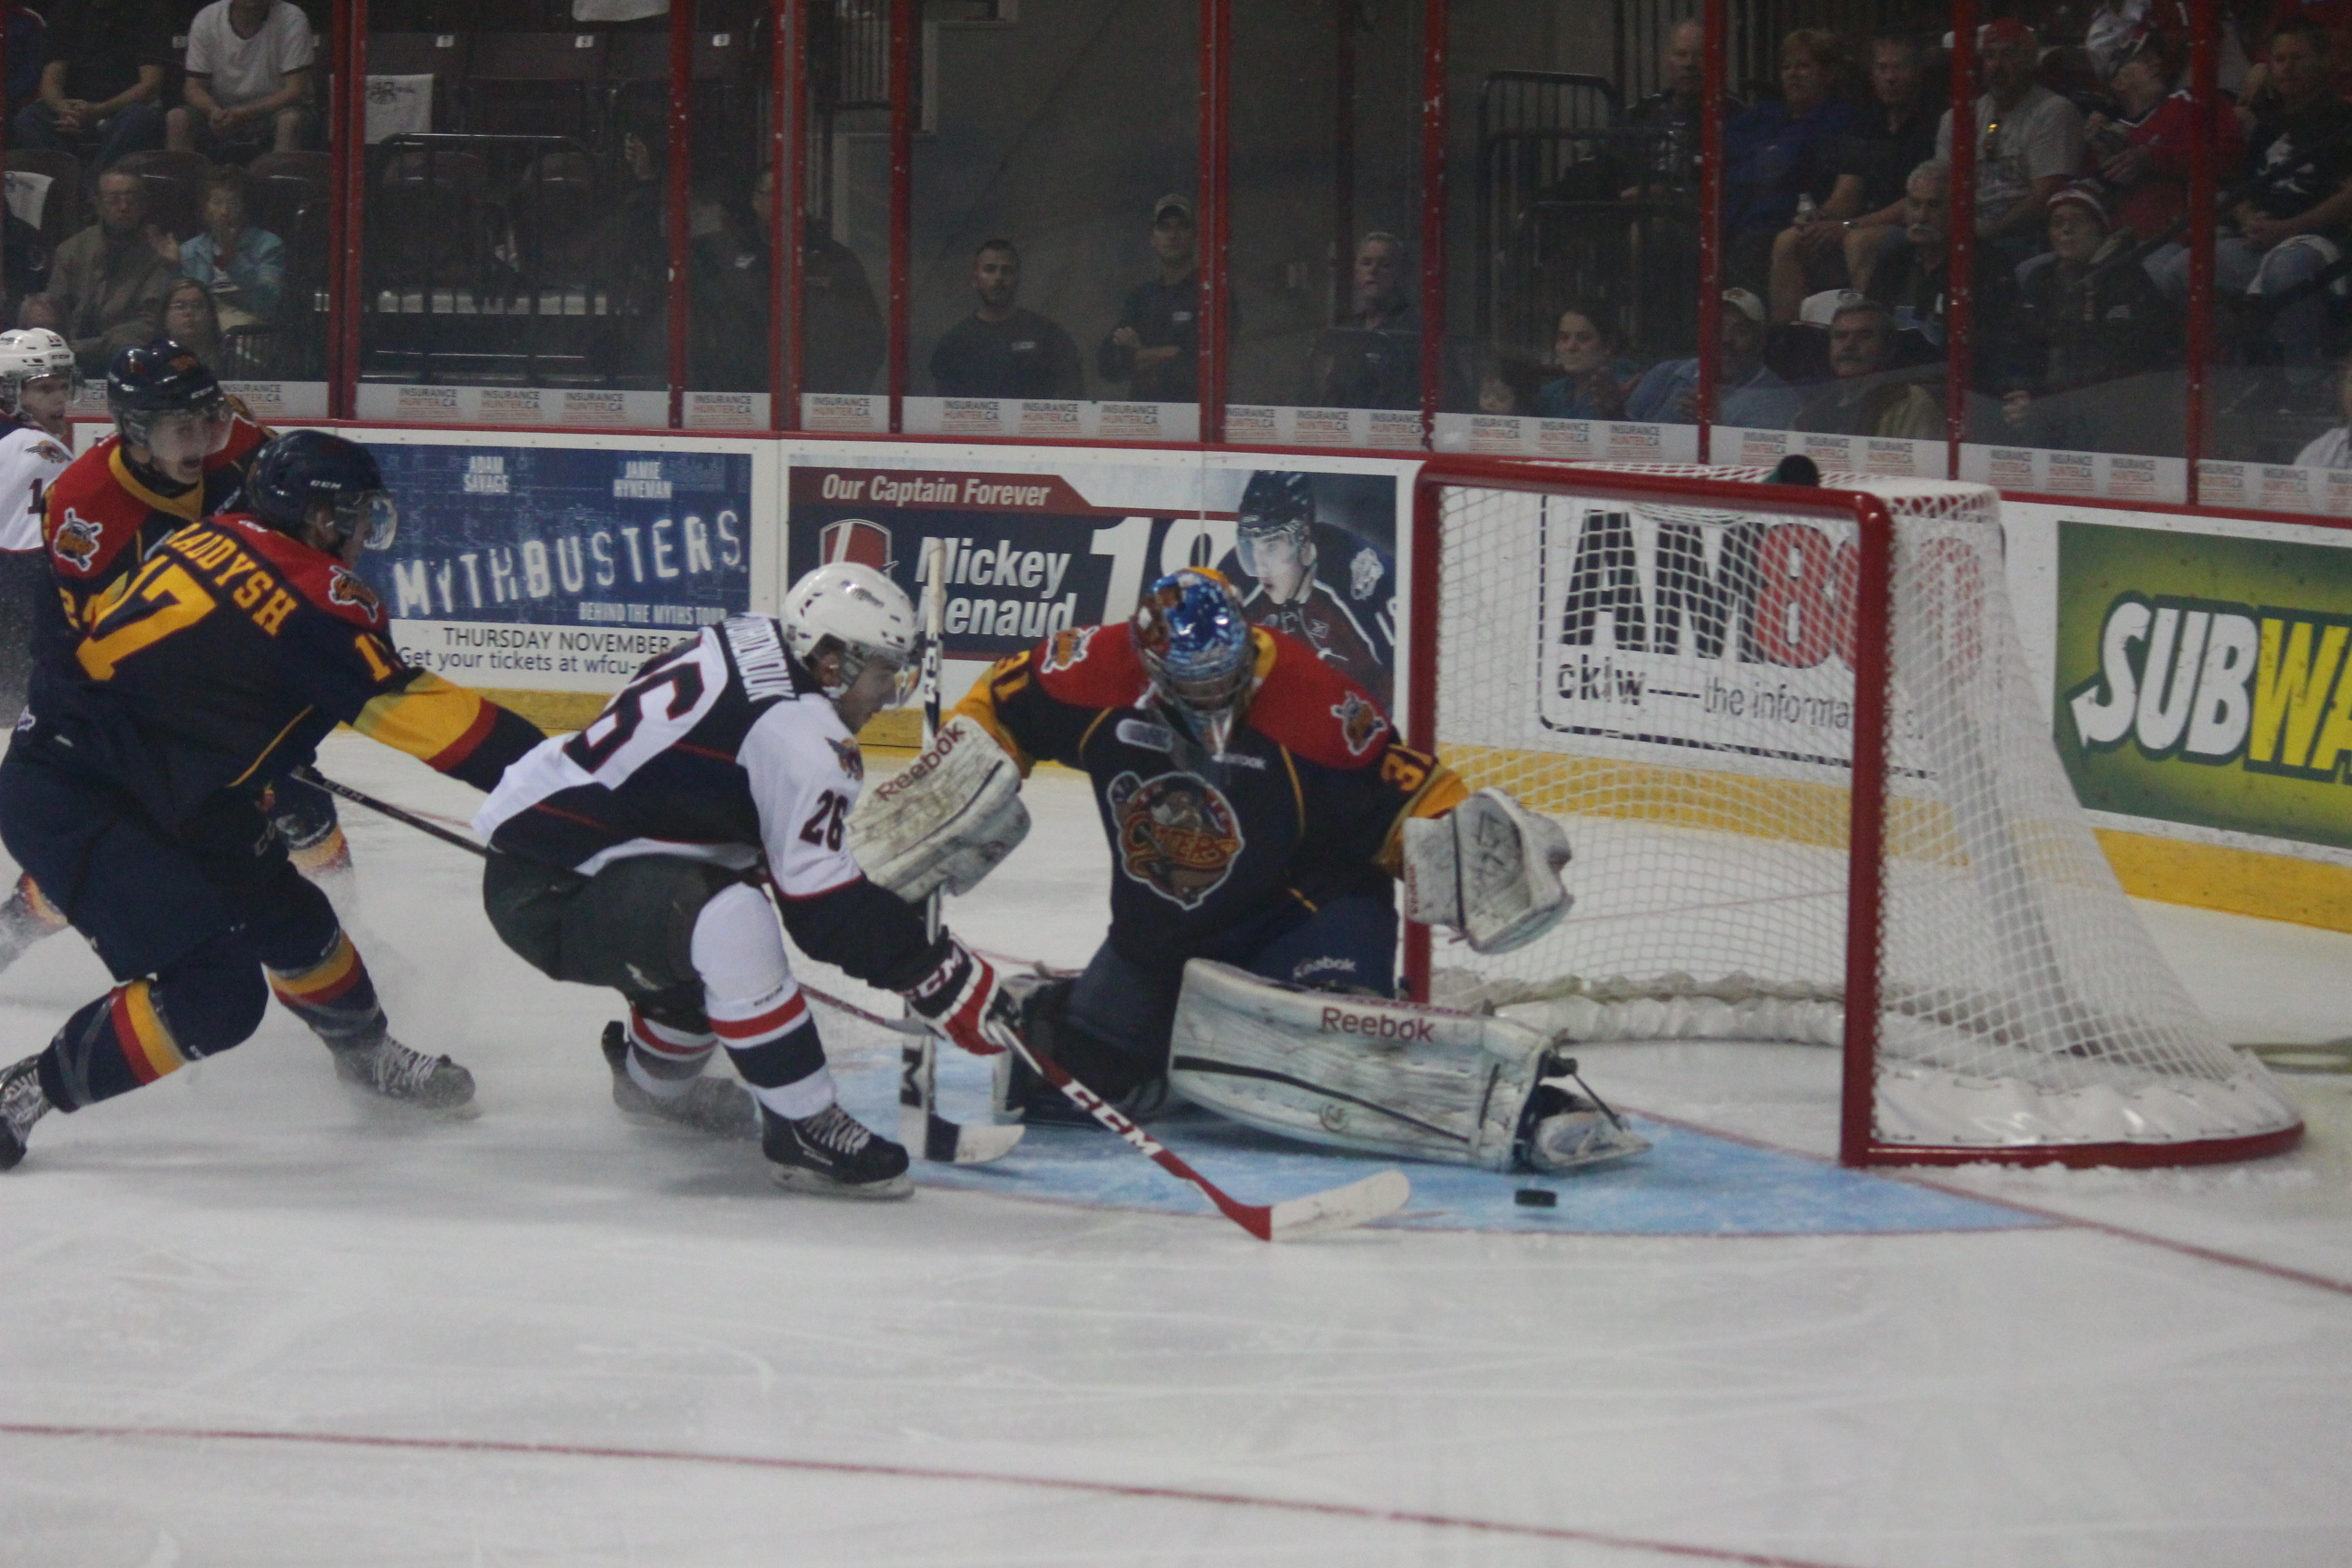 Windsor Spitfires lose 5-2 against the Erie Otters on September 26, 2014. (Photo by Jason Viau)